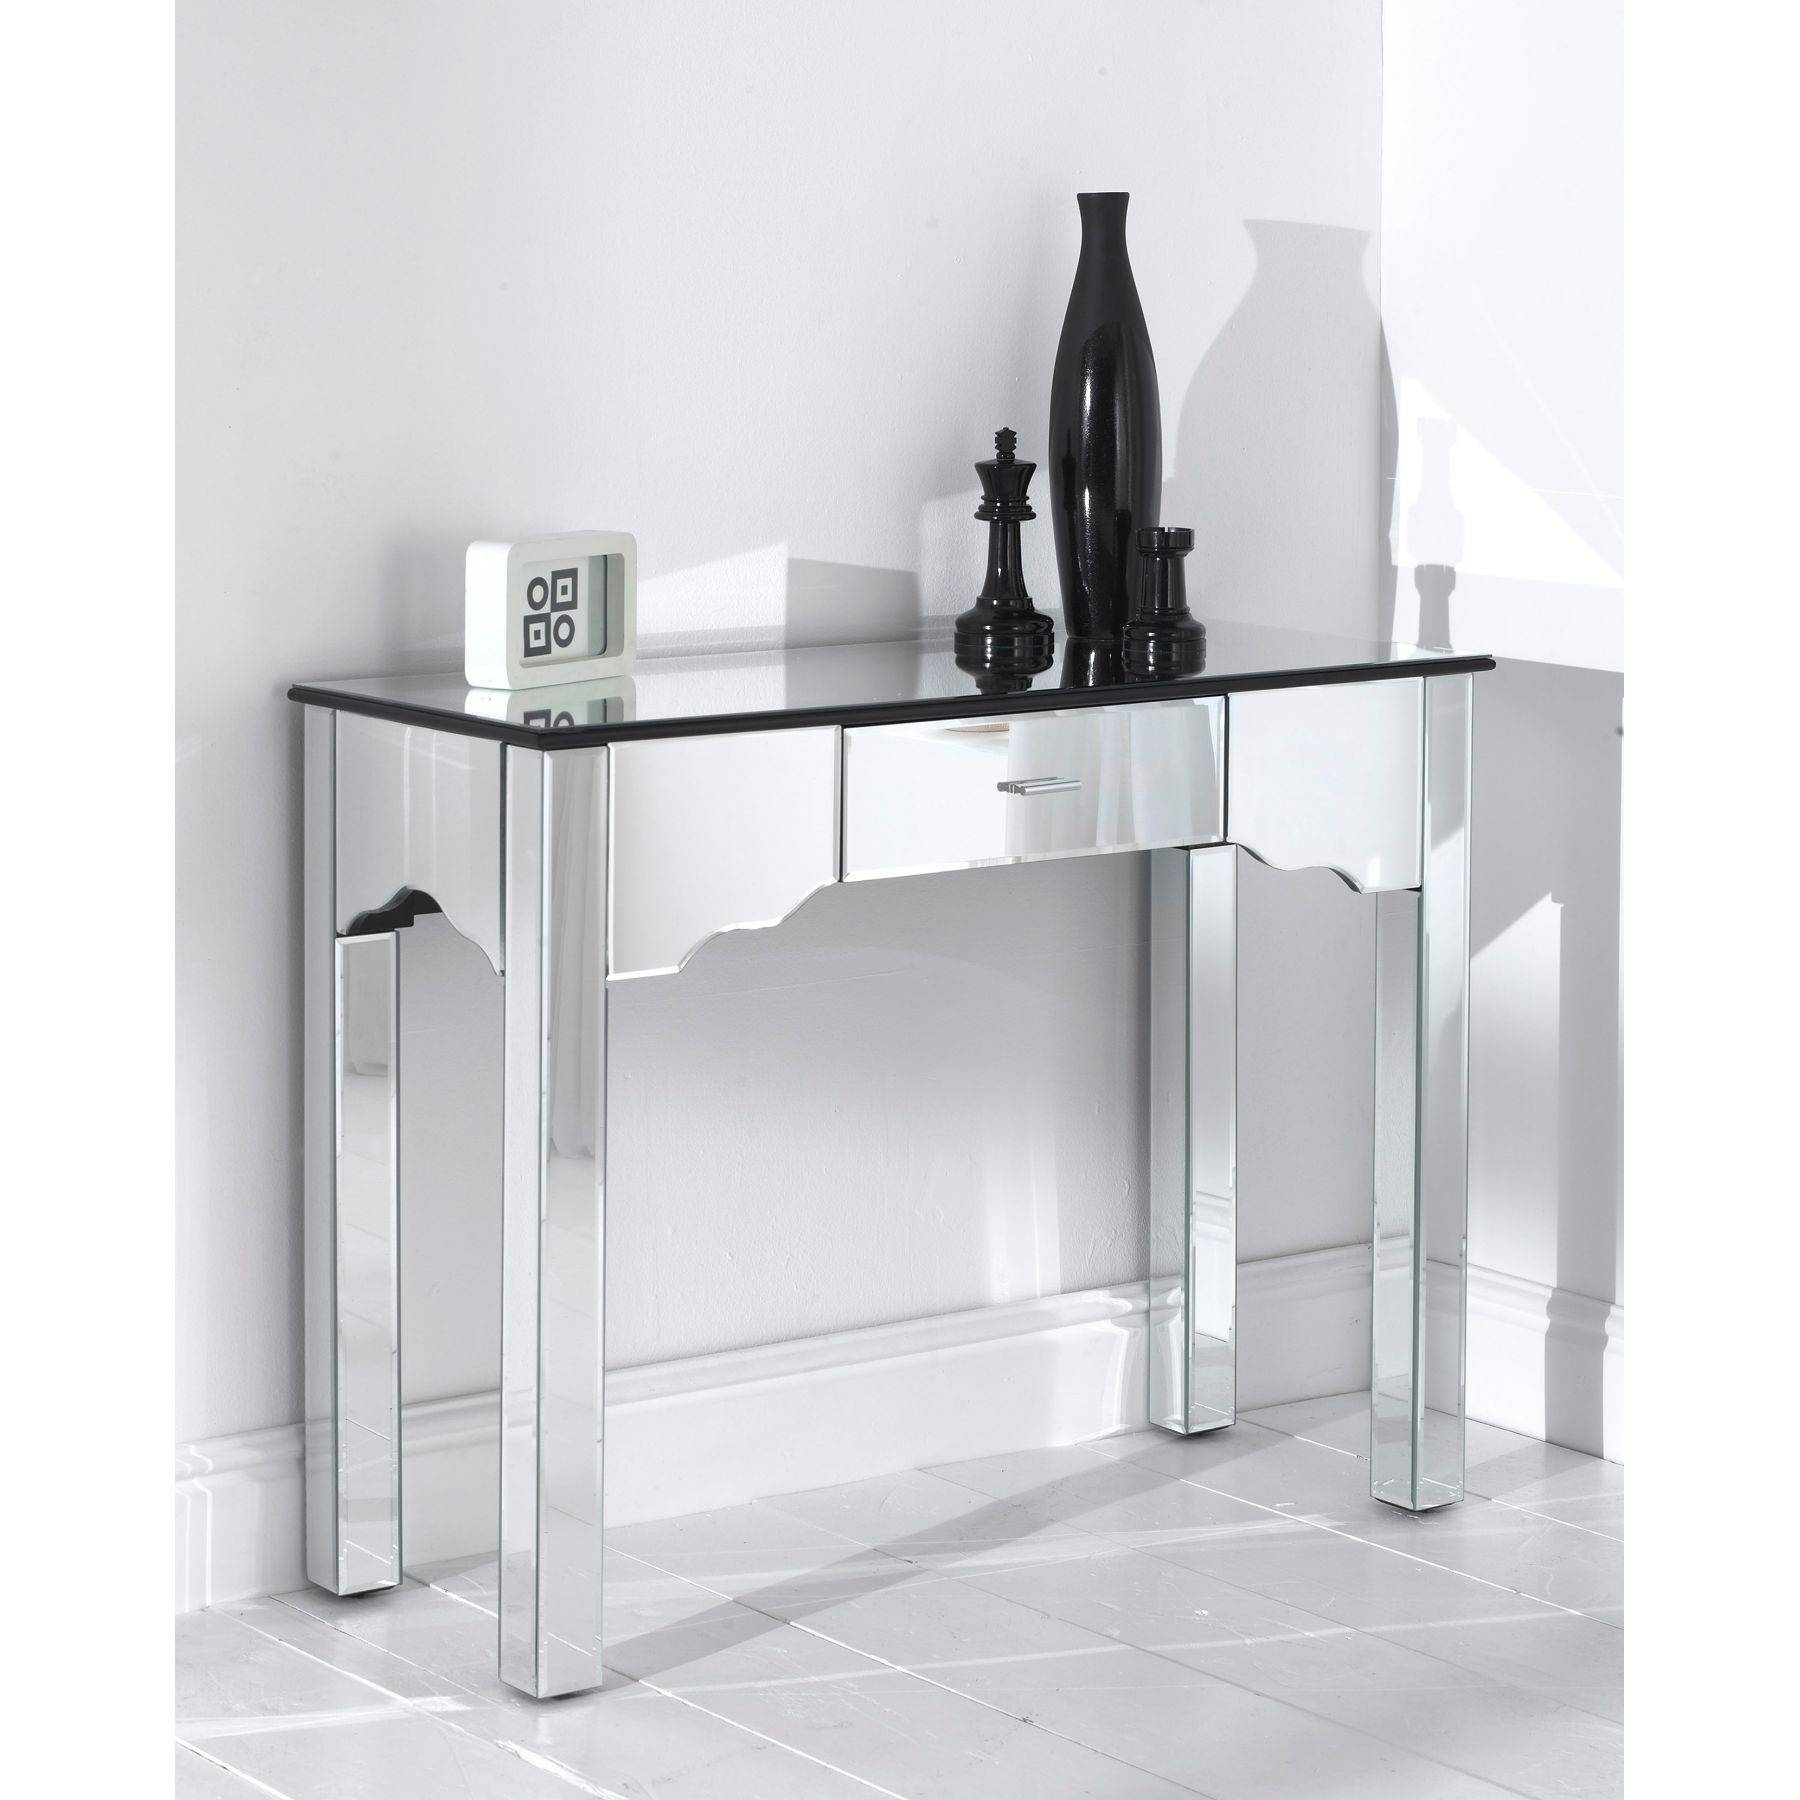 Large Mirrored Console Table 124 Fascinating Ideas On Console with regard to Small Table Mirrors (Image 11 of 25)